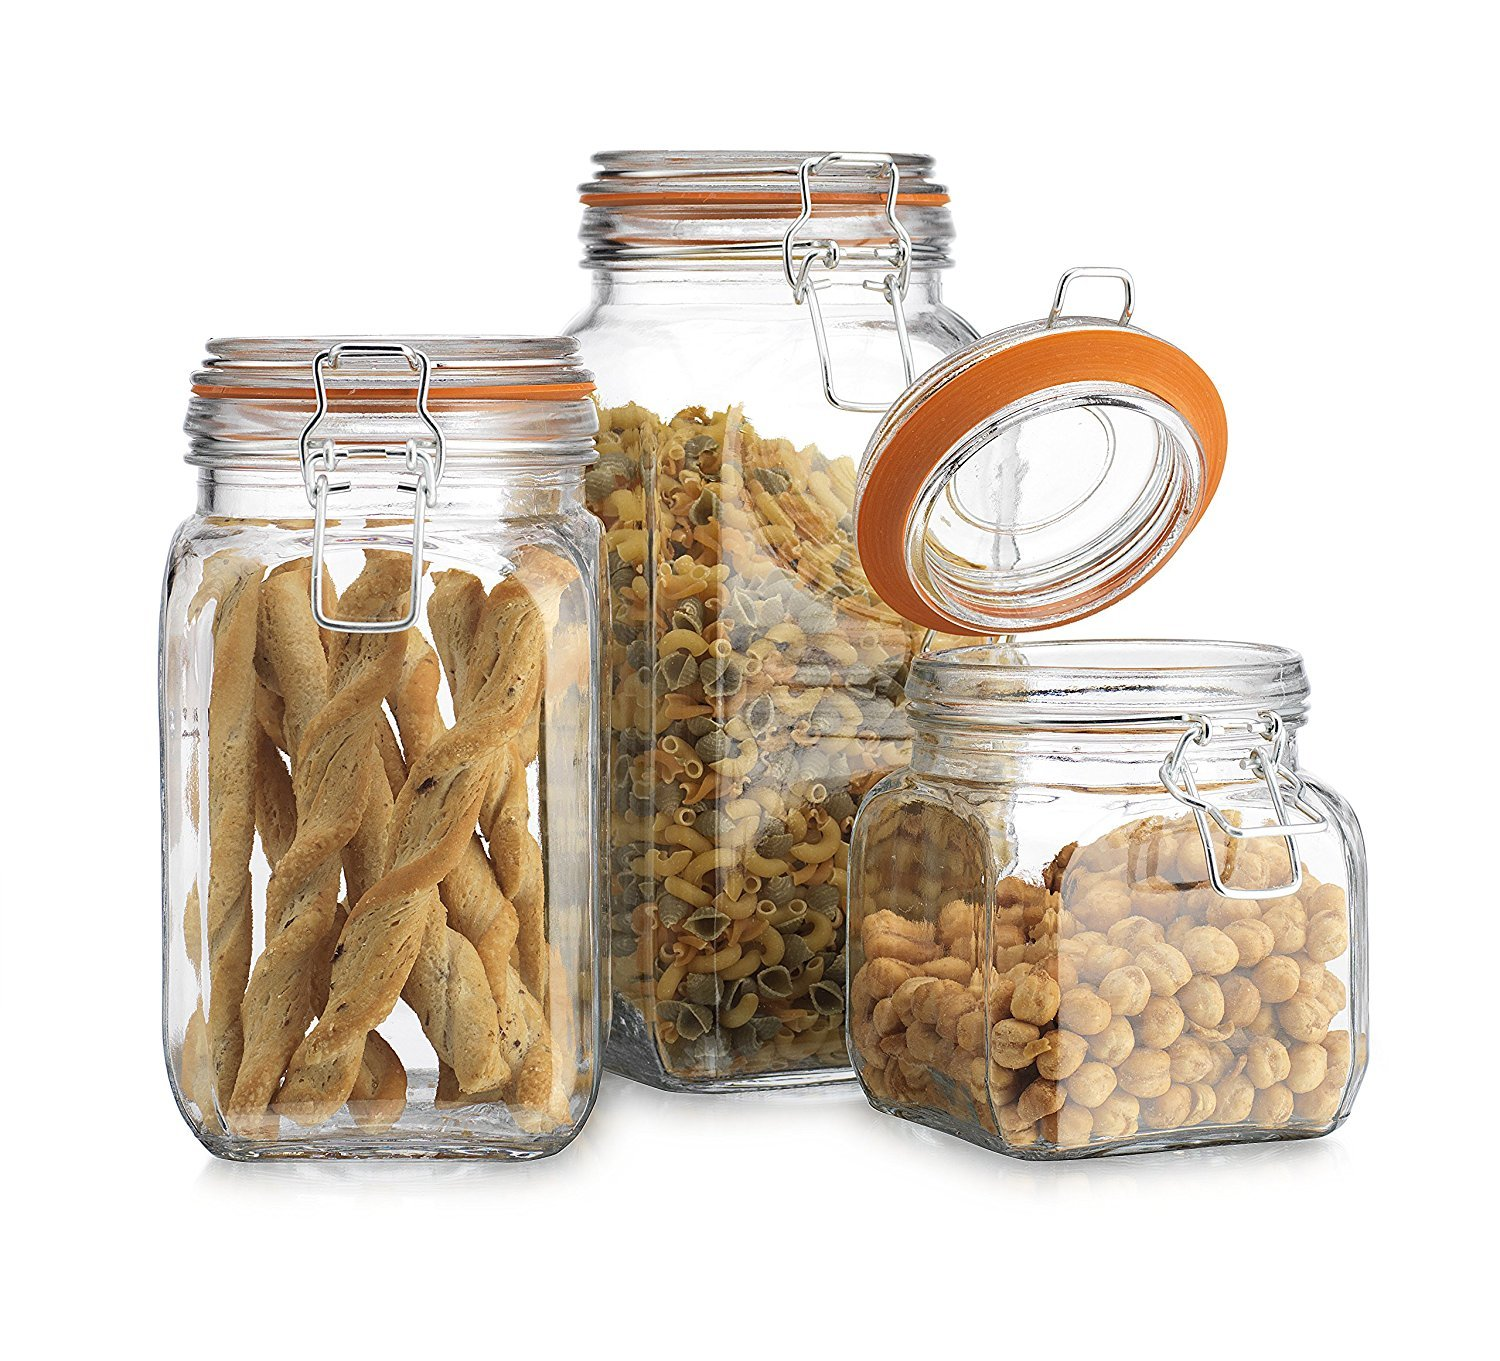 shop amazon com food bins amp canisters high quality airtight glass canister hermetic